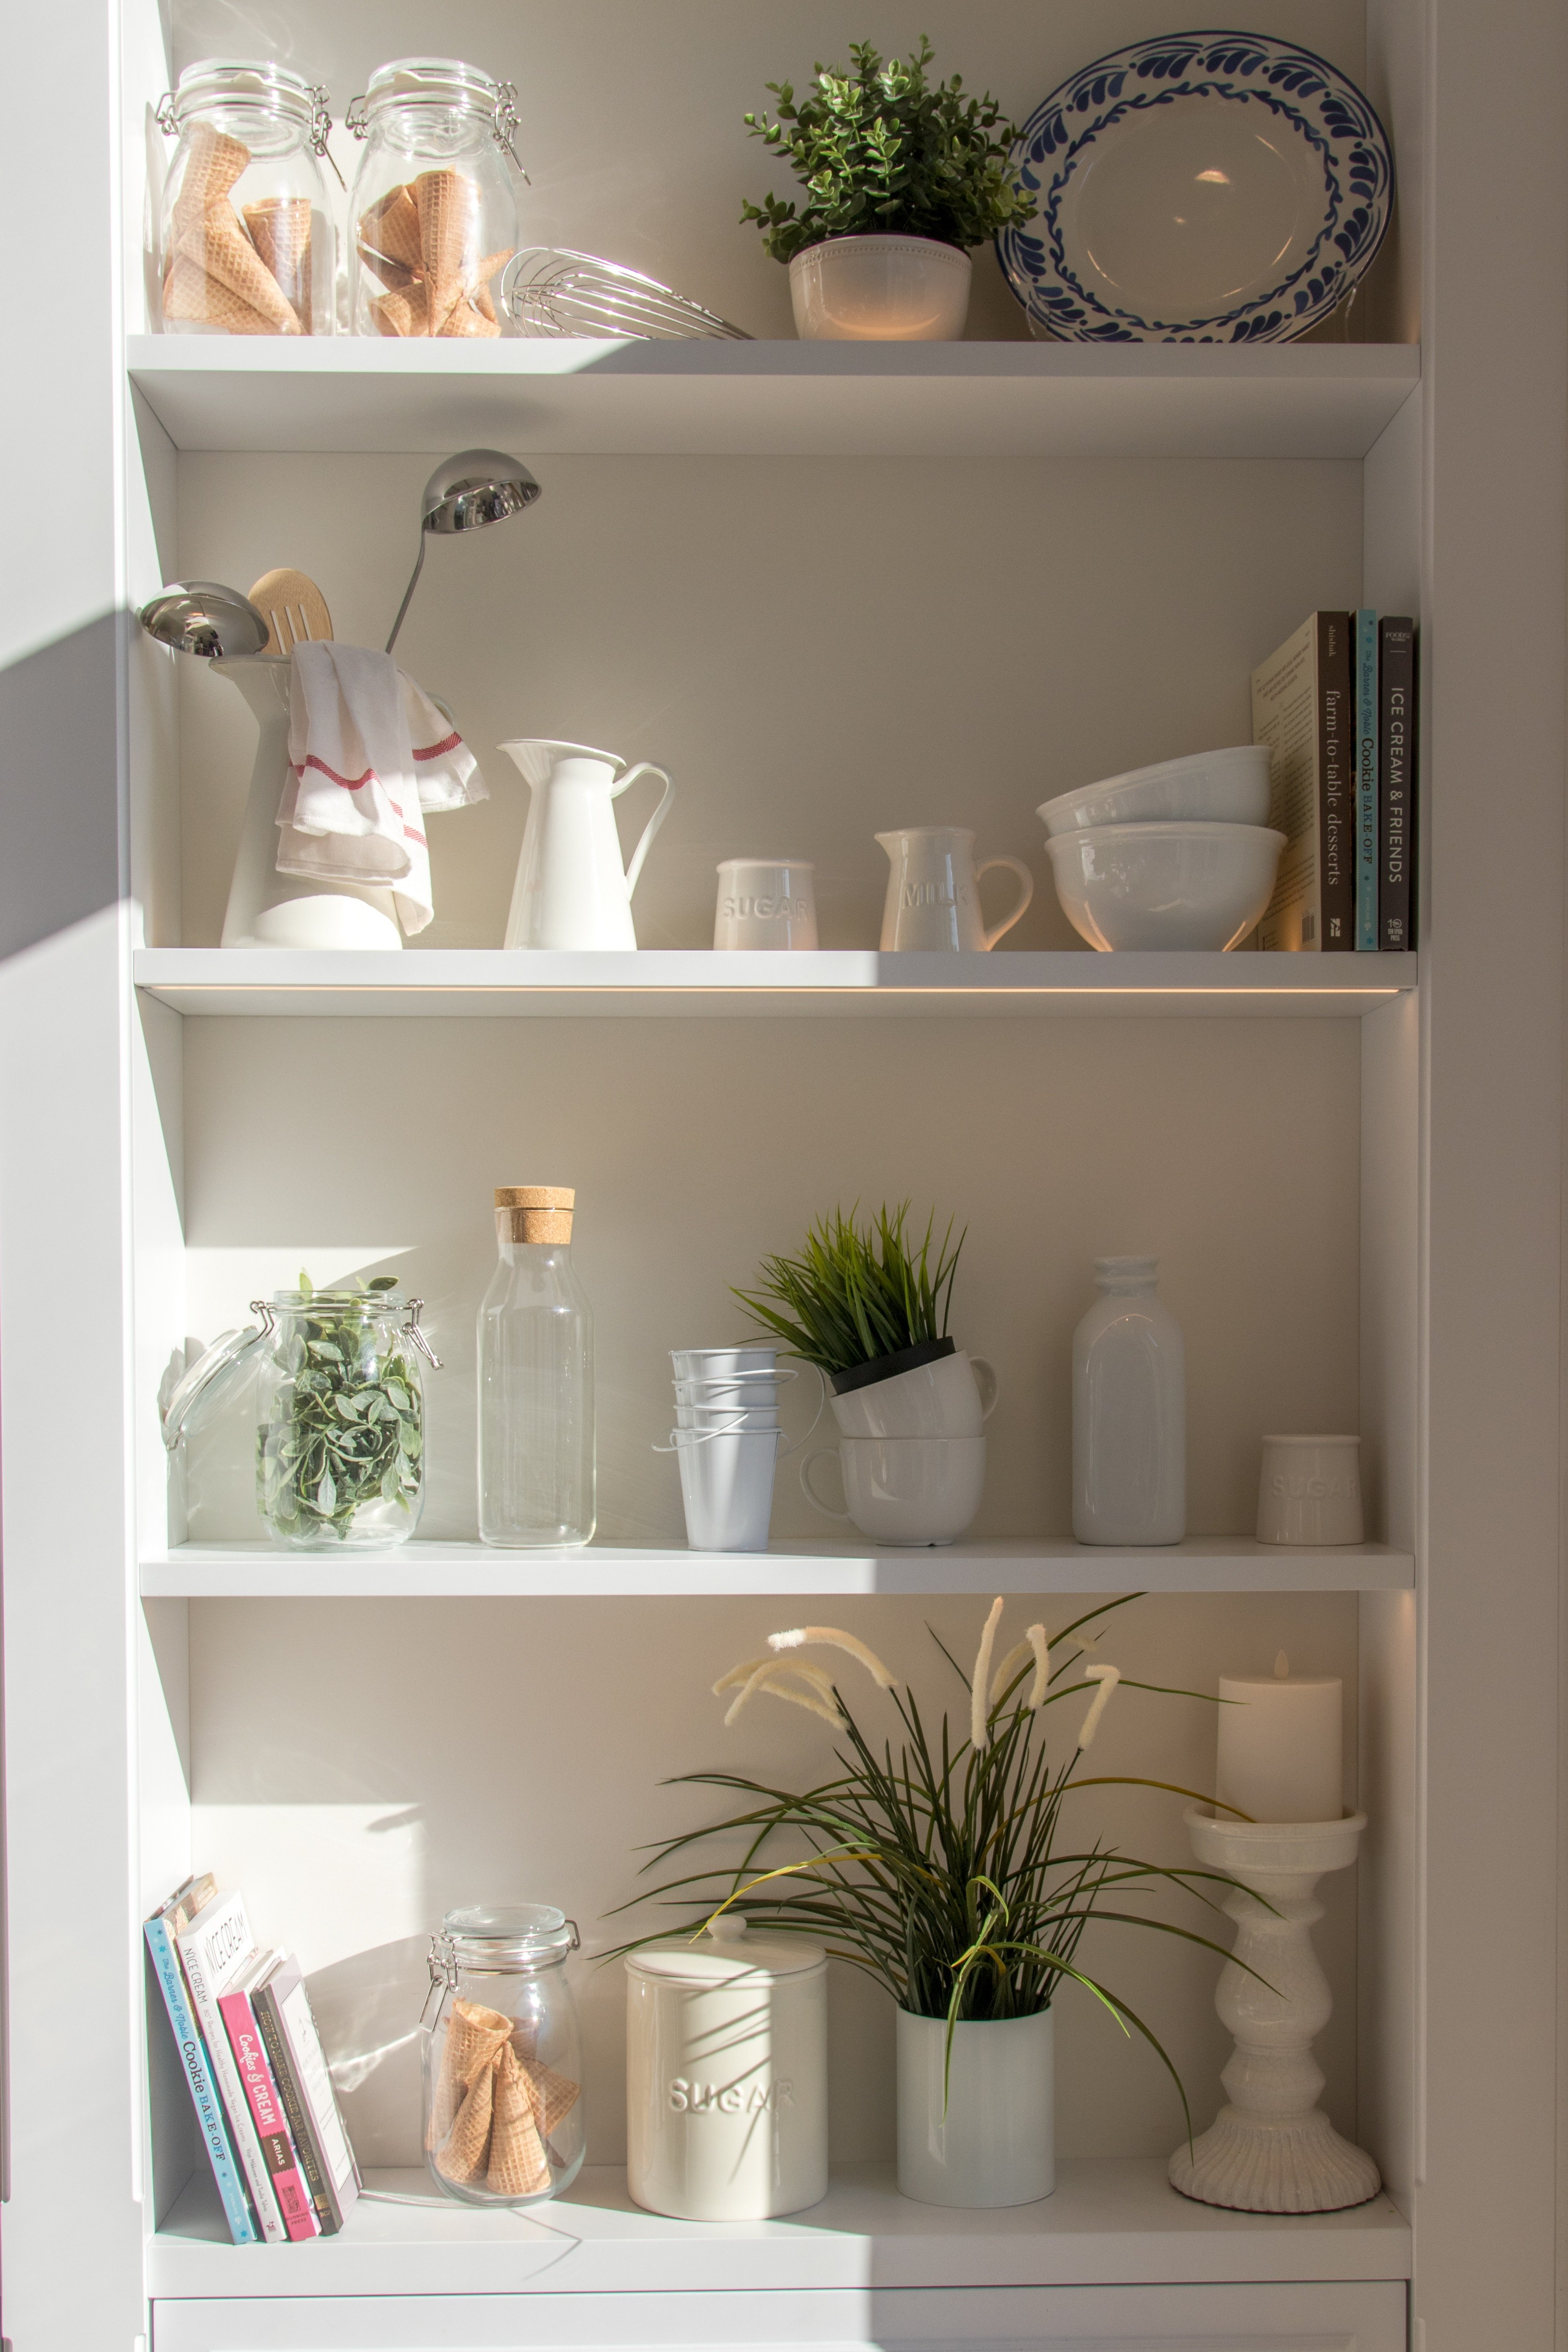 Kitchen shelf with multiple storage containers